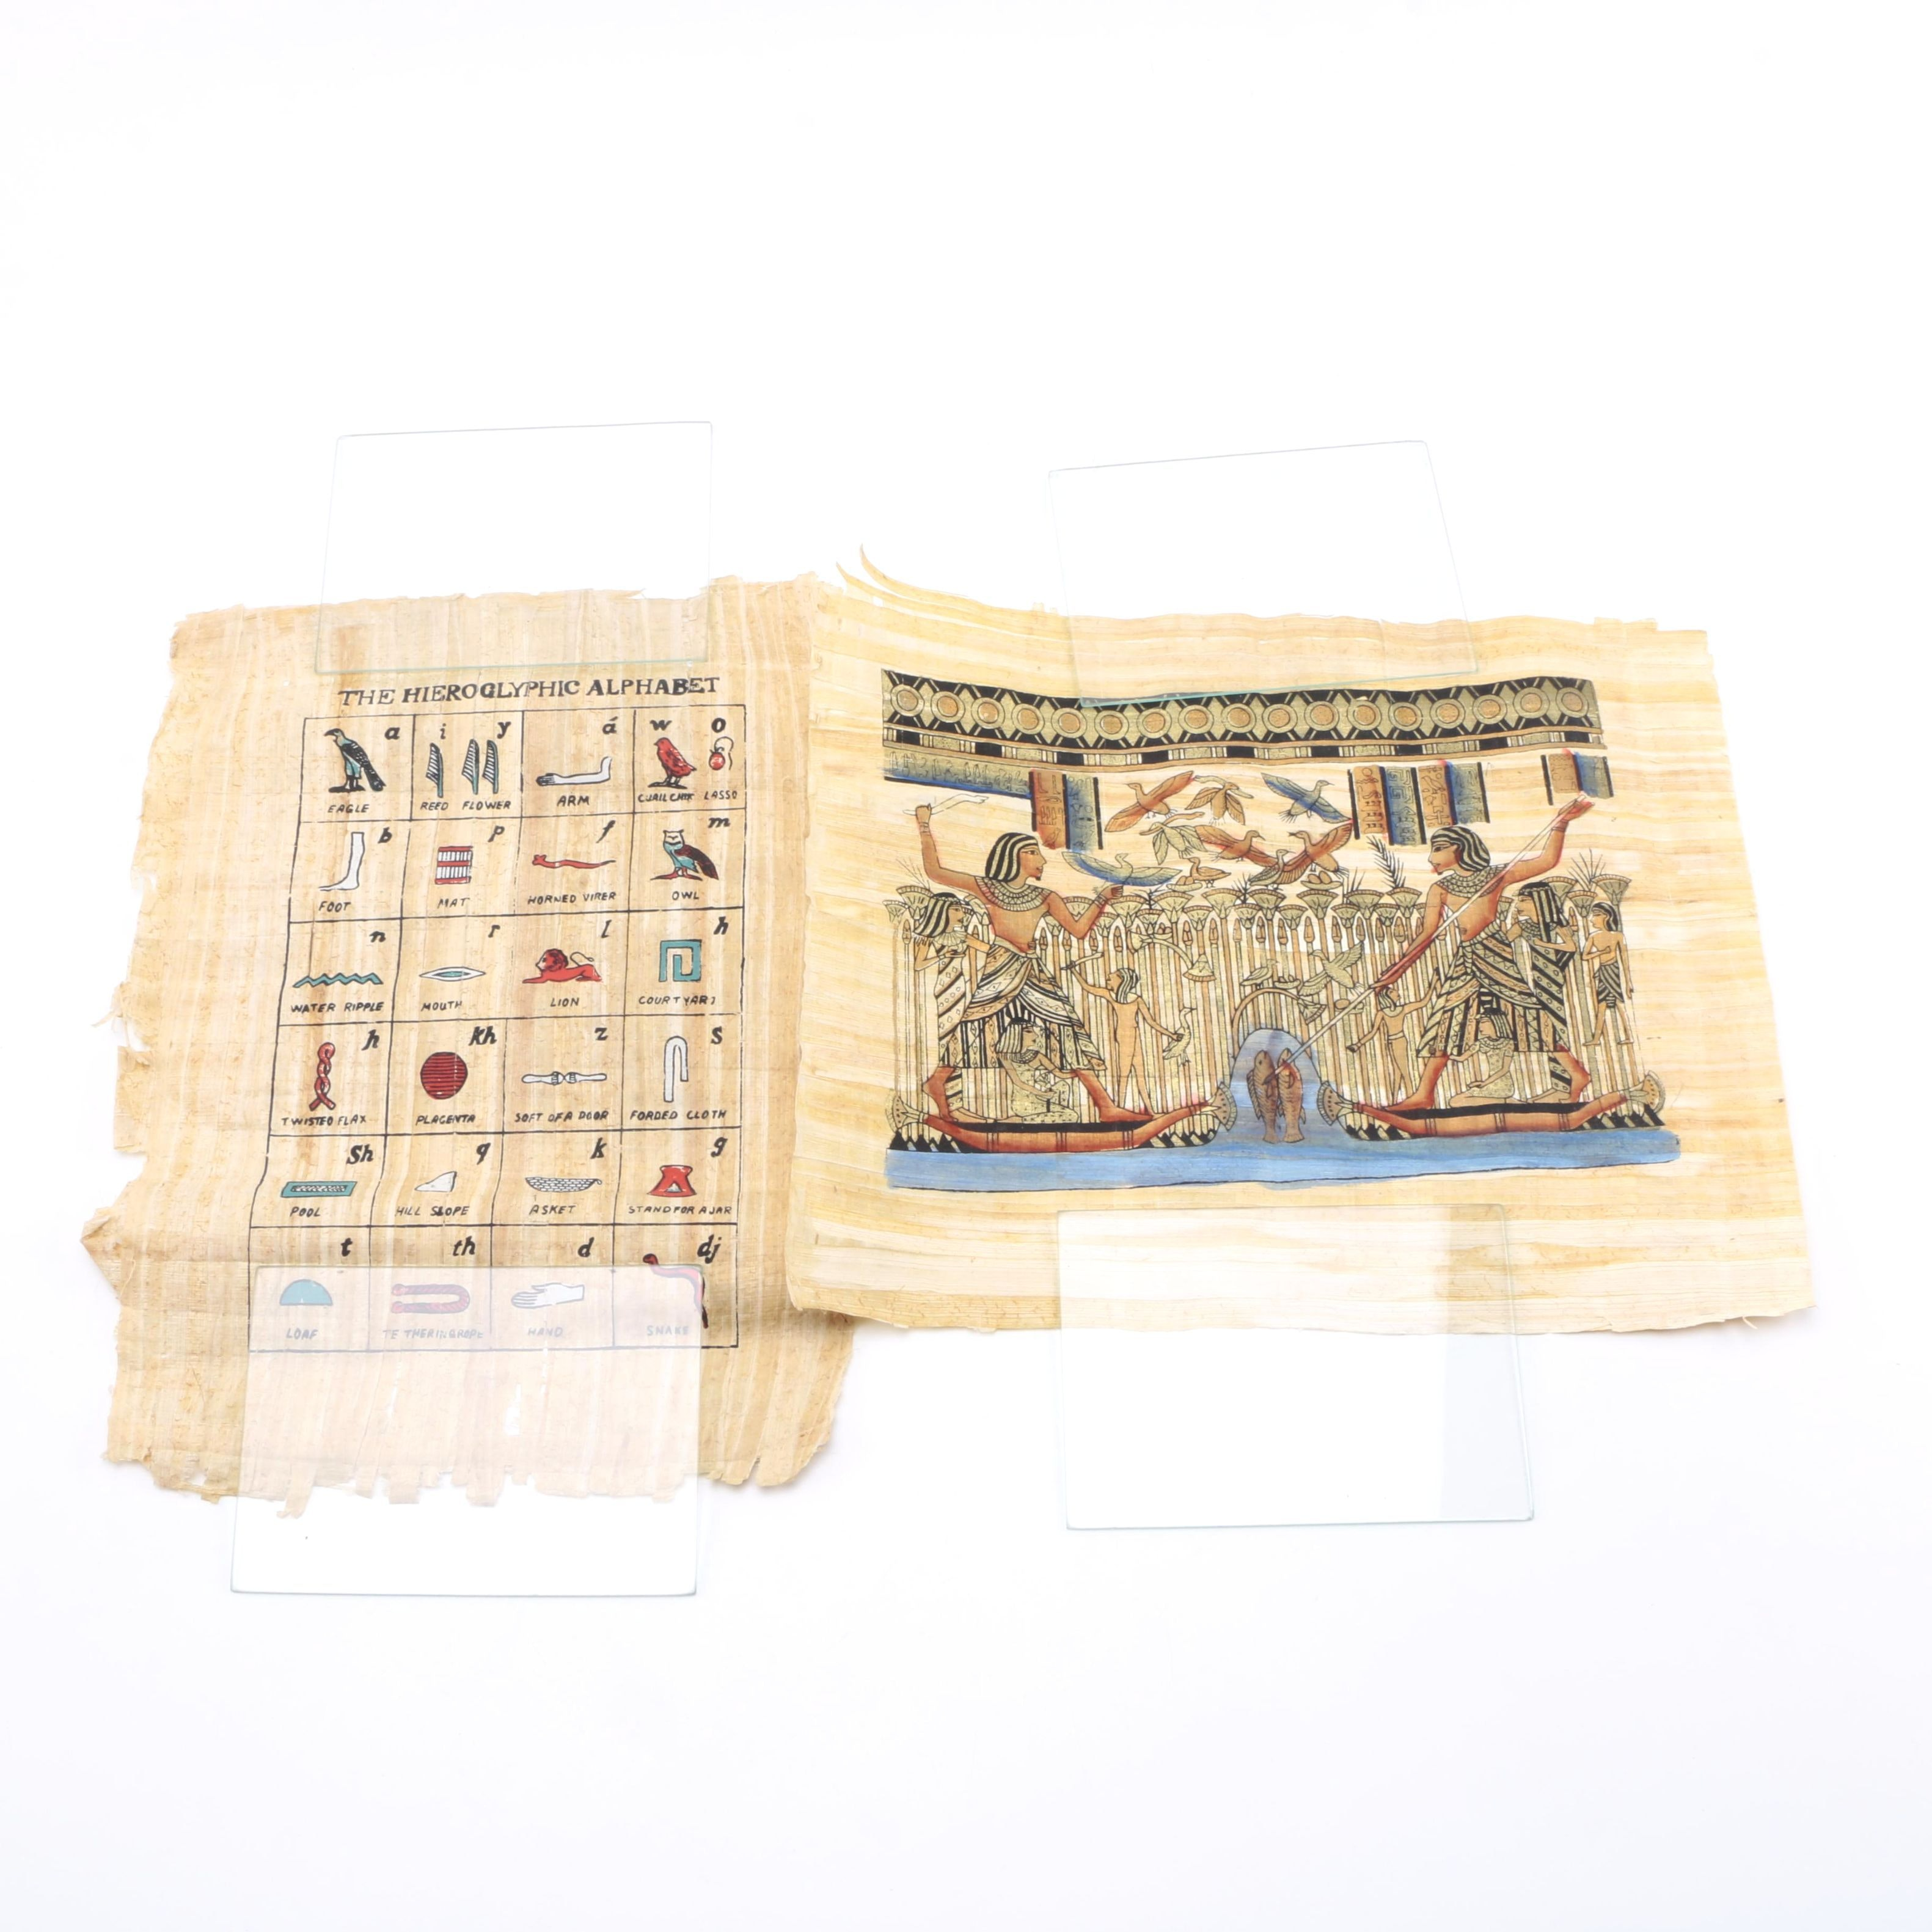 Egyptian Style Serigraph Prints on Papyrus.